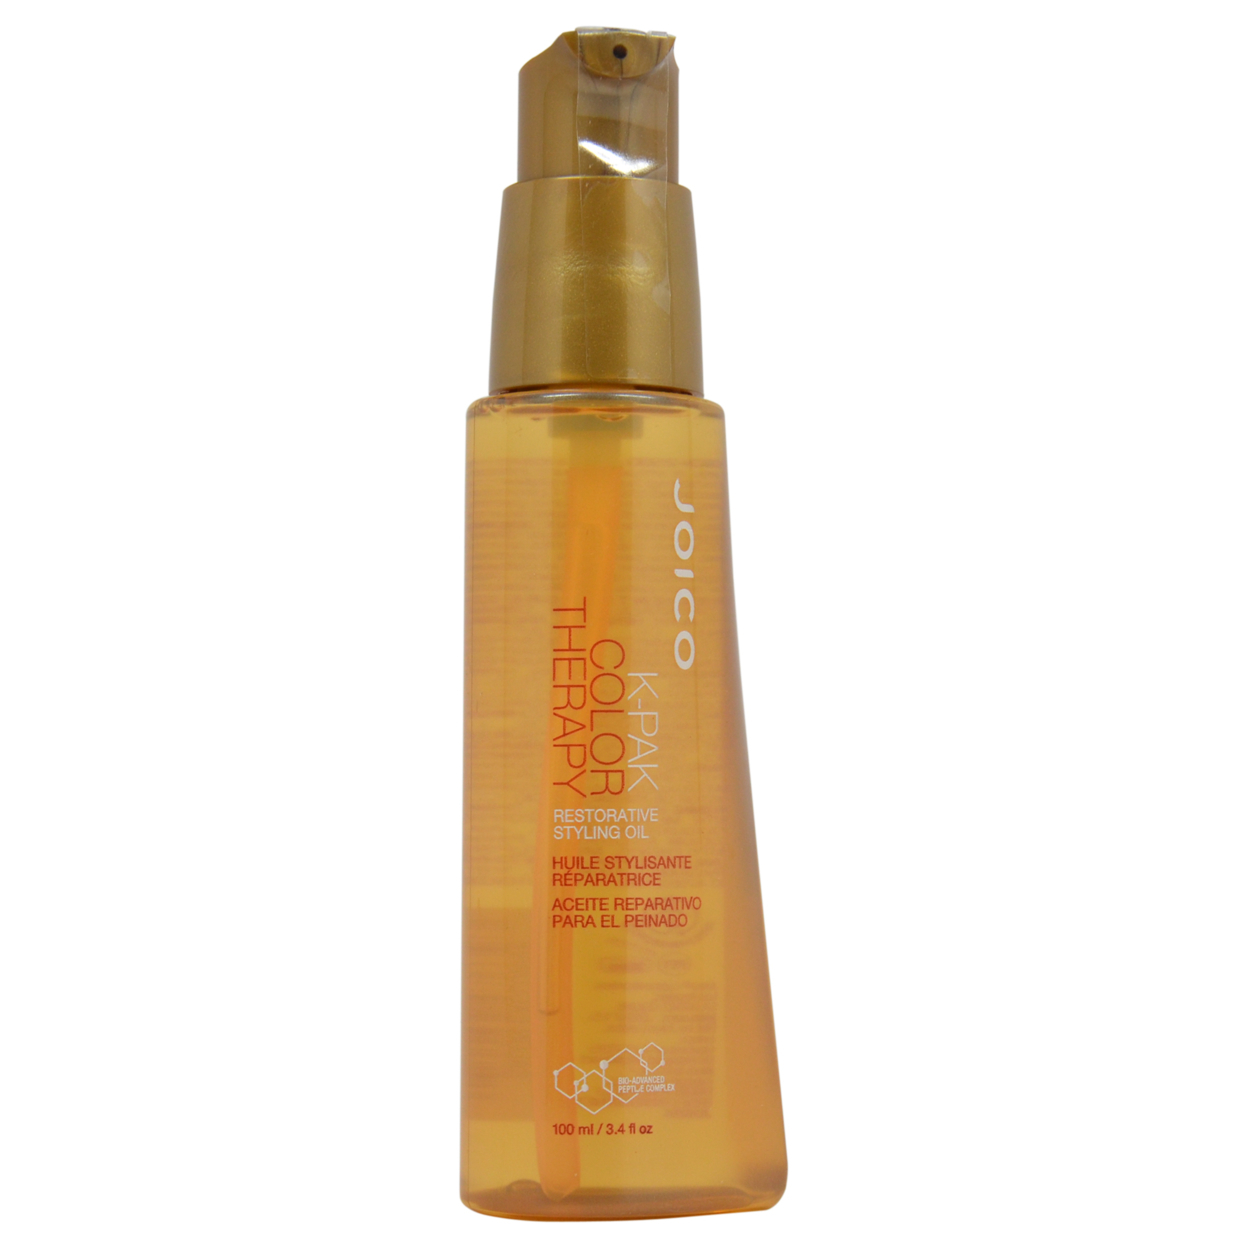 K-Pak Color Therapy Restorative Styling Oil by Joico for Unisex - 3.4 oz Oil 583c6c5ce2246159f167e05d